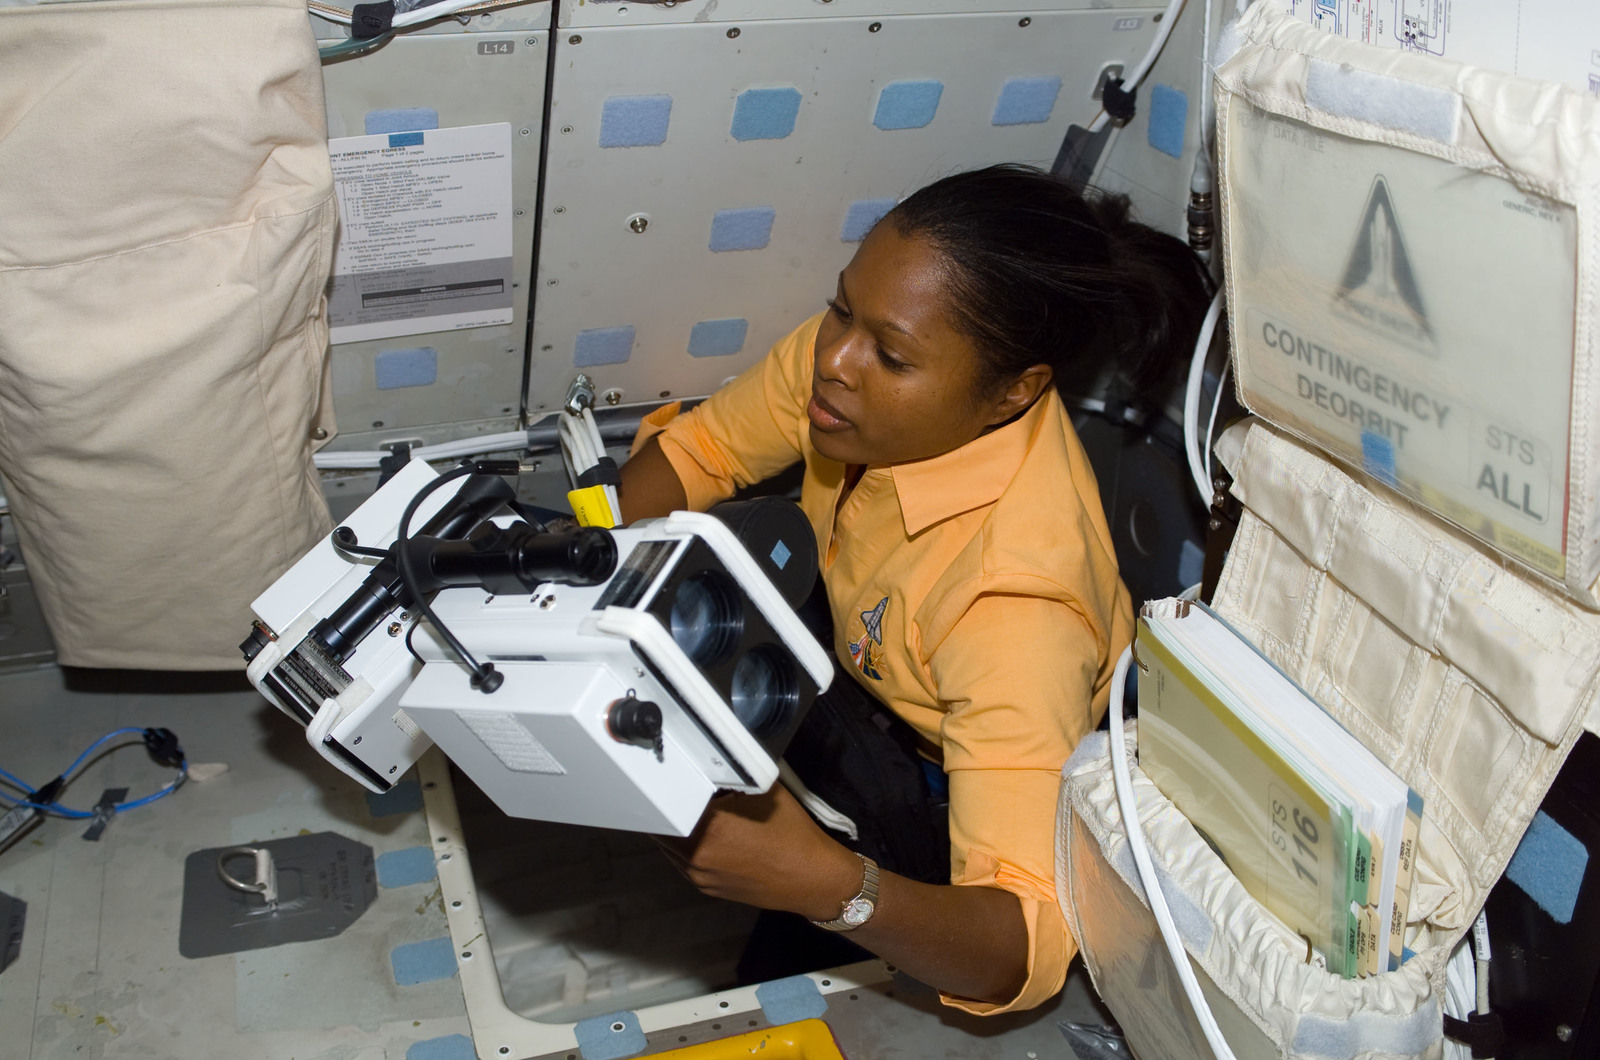 S116E06894 - STS-116 - STS-116 MS Higginbotham using Night Vision Photography equipment on the MDDK on Space Shuttle Discovery